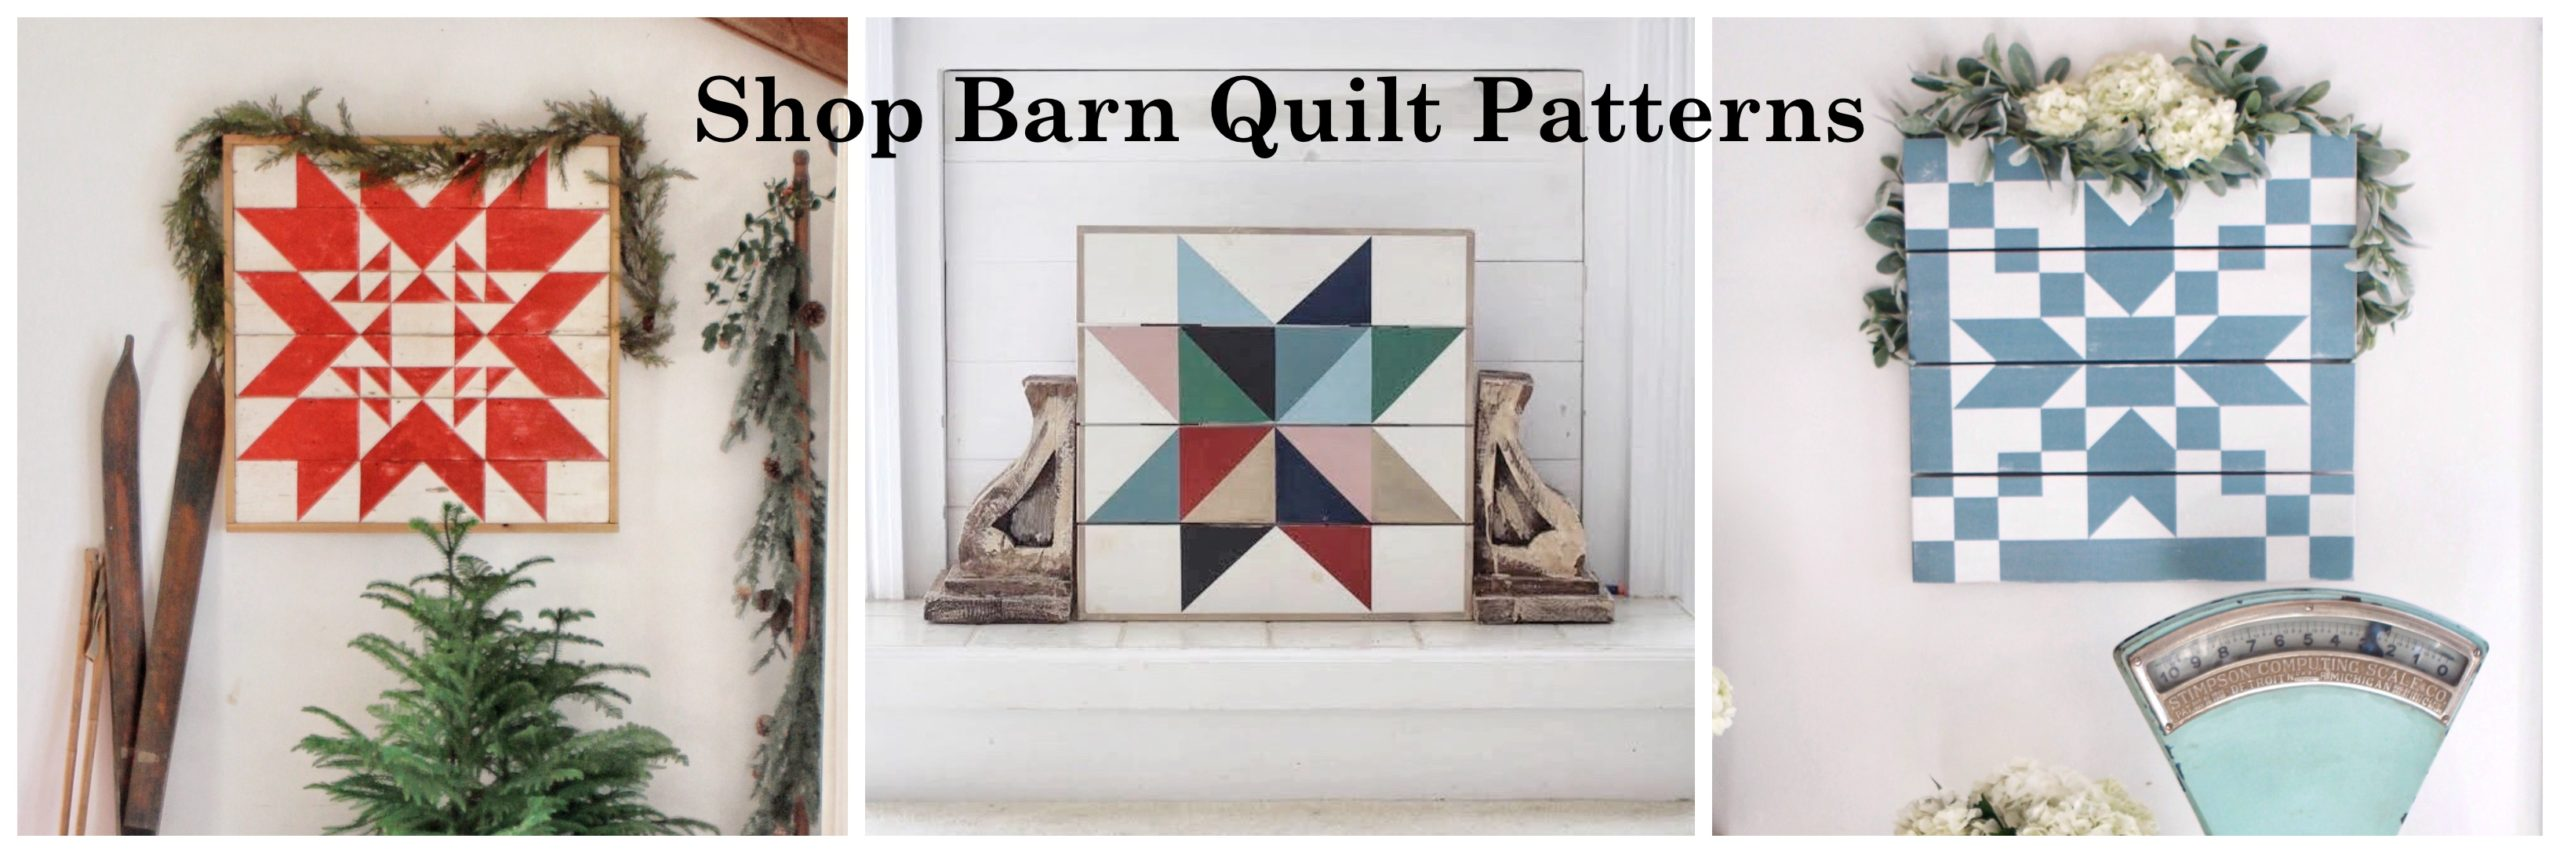 shop barn quilt patterns